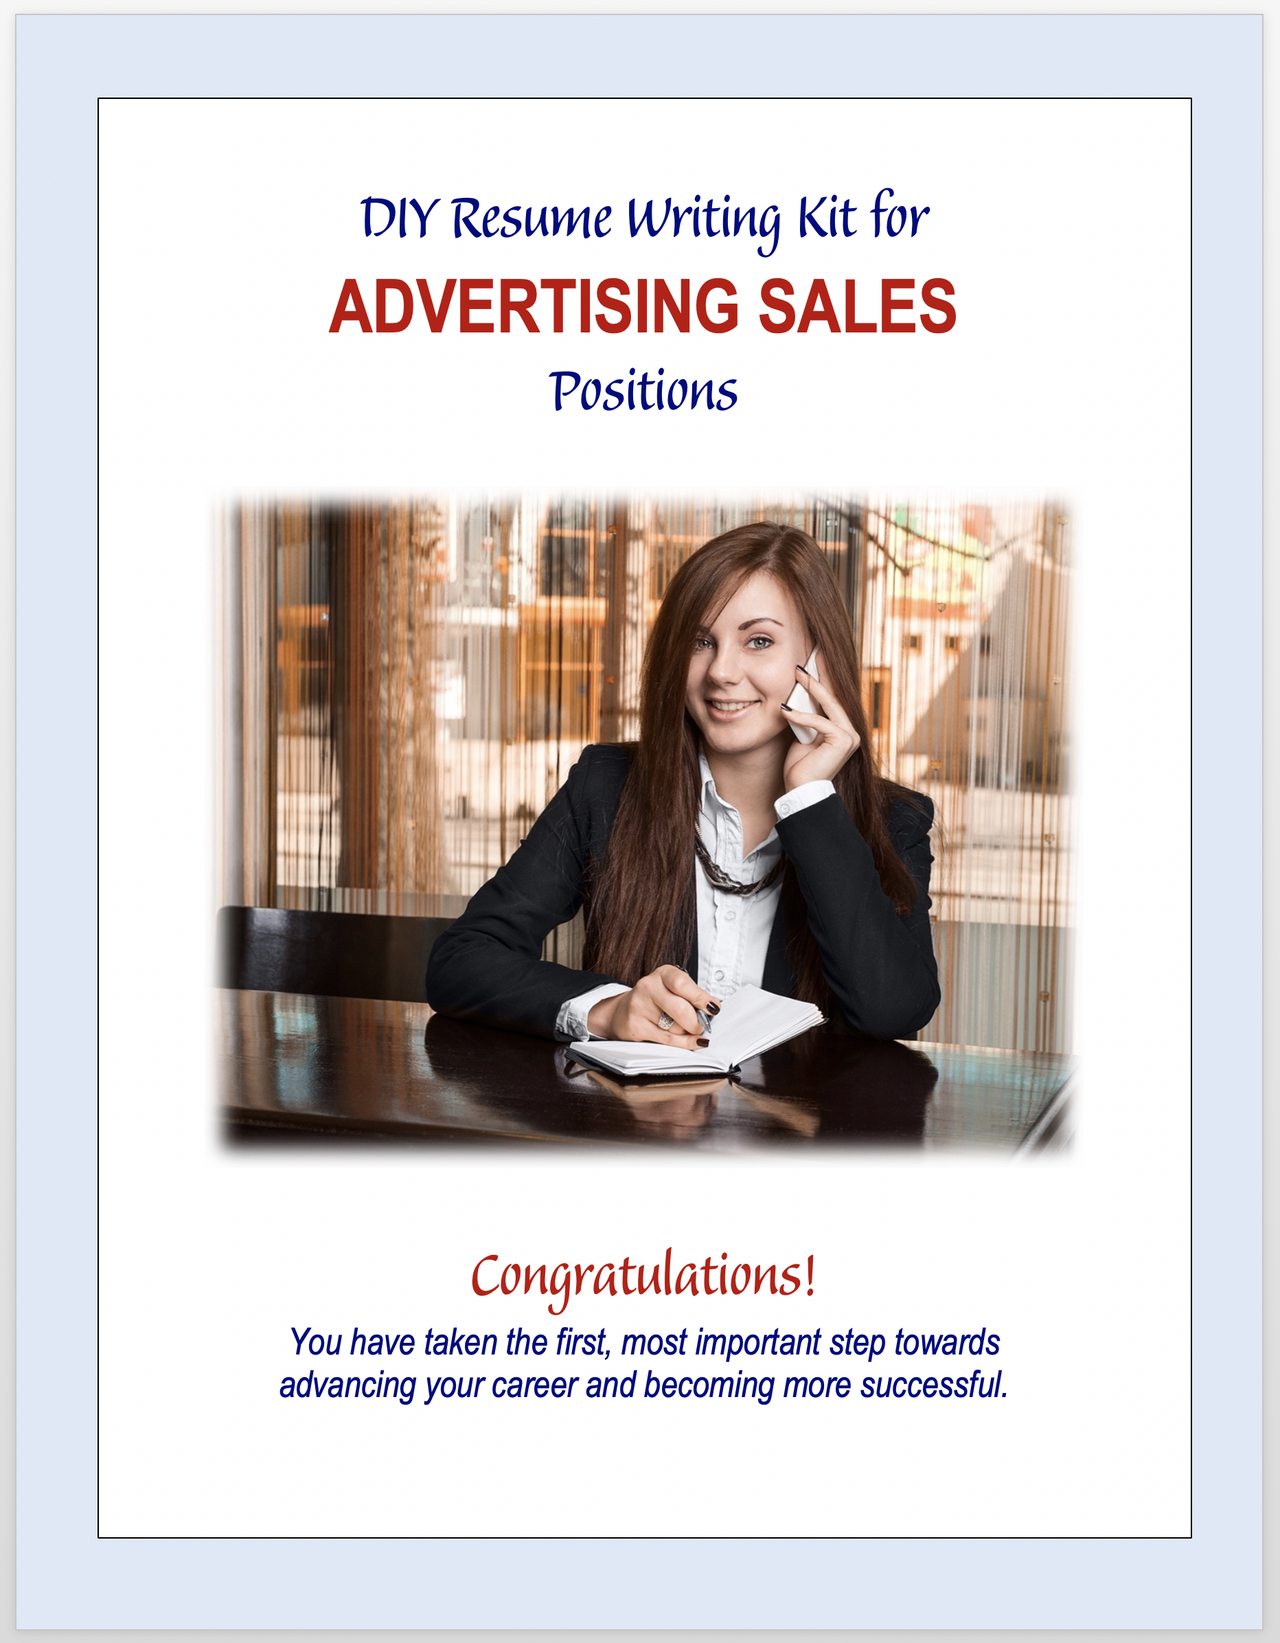 advertising sales.png